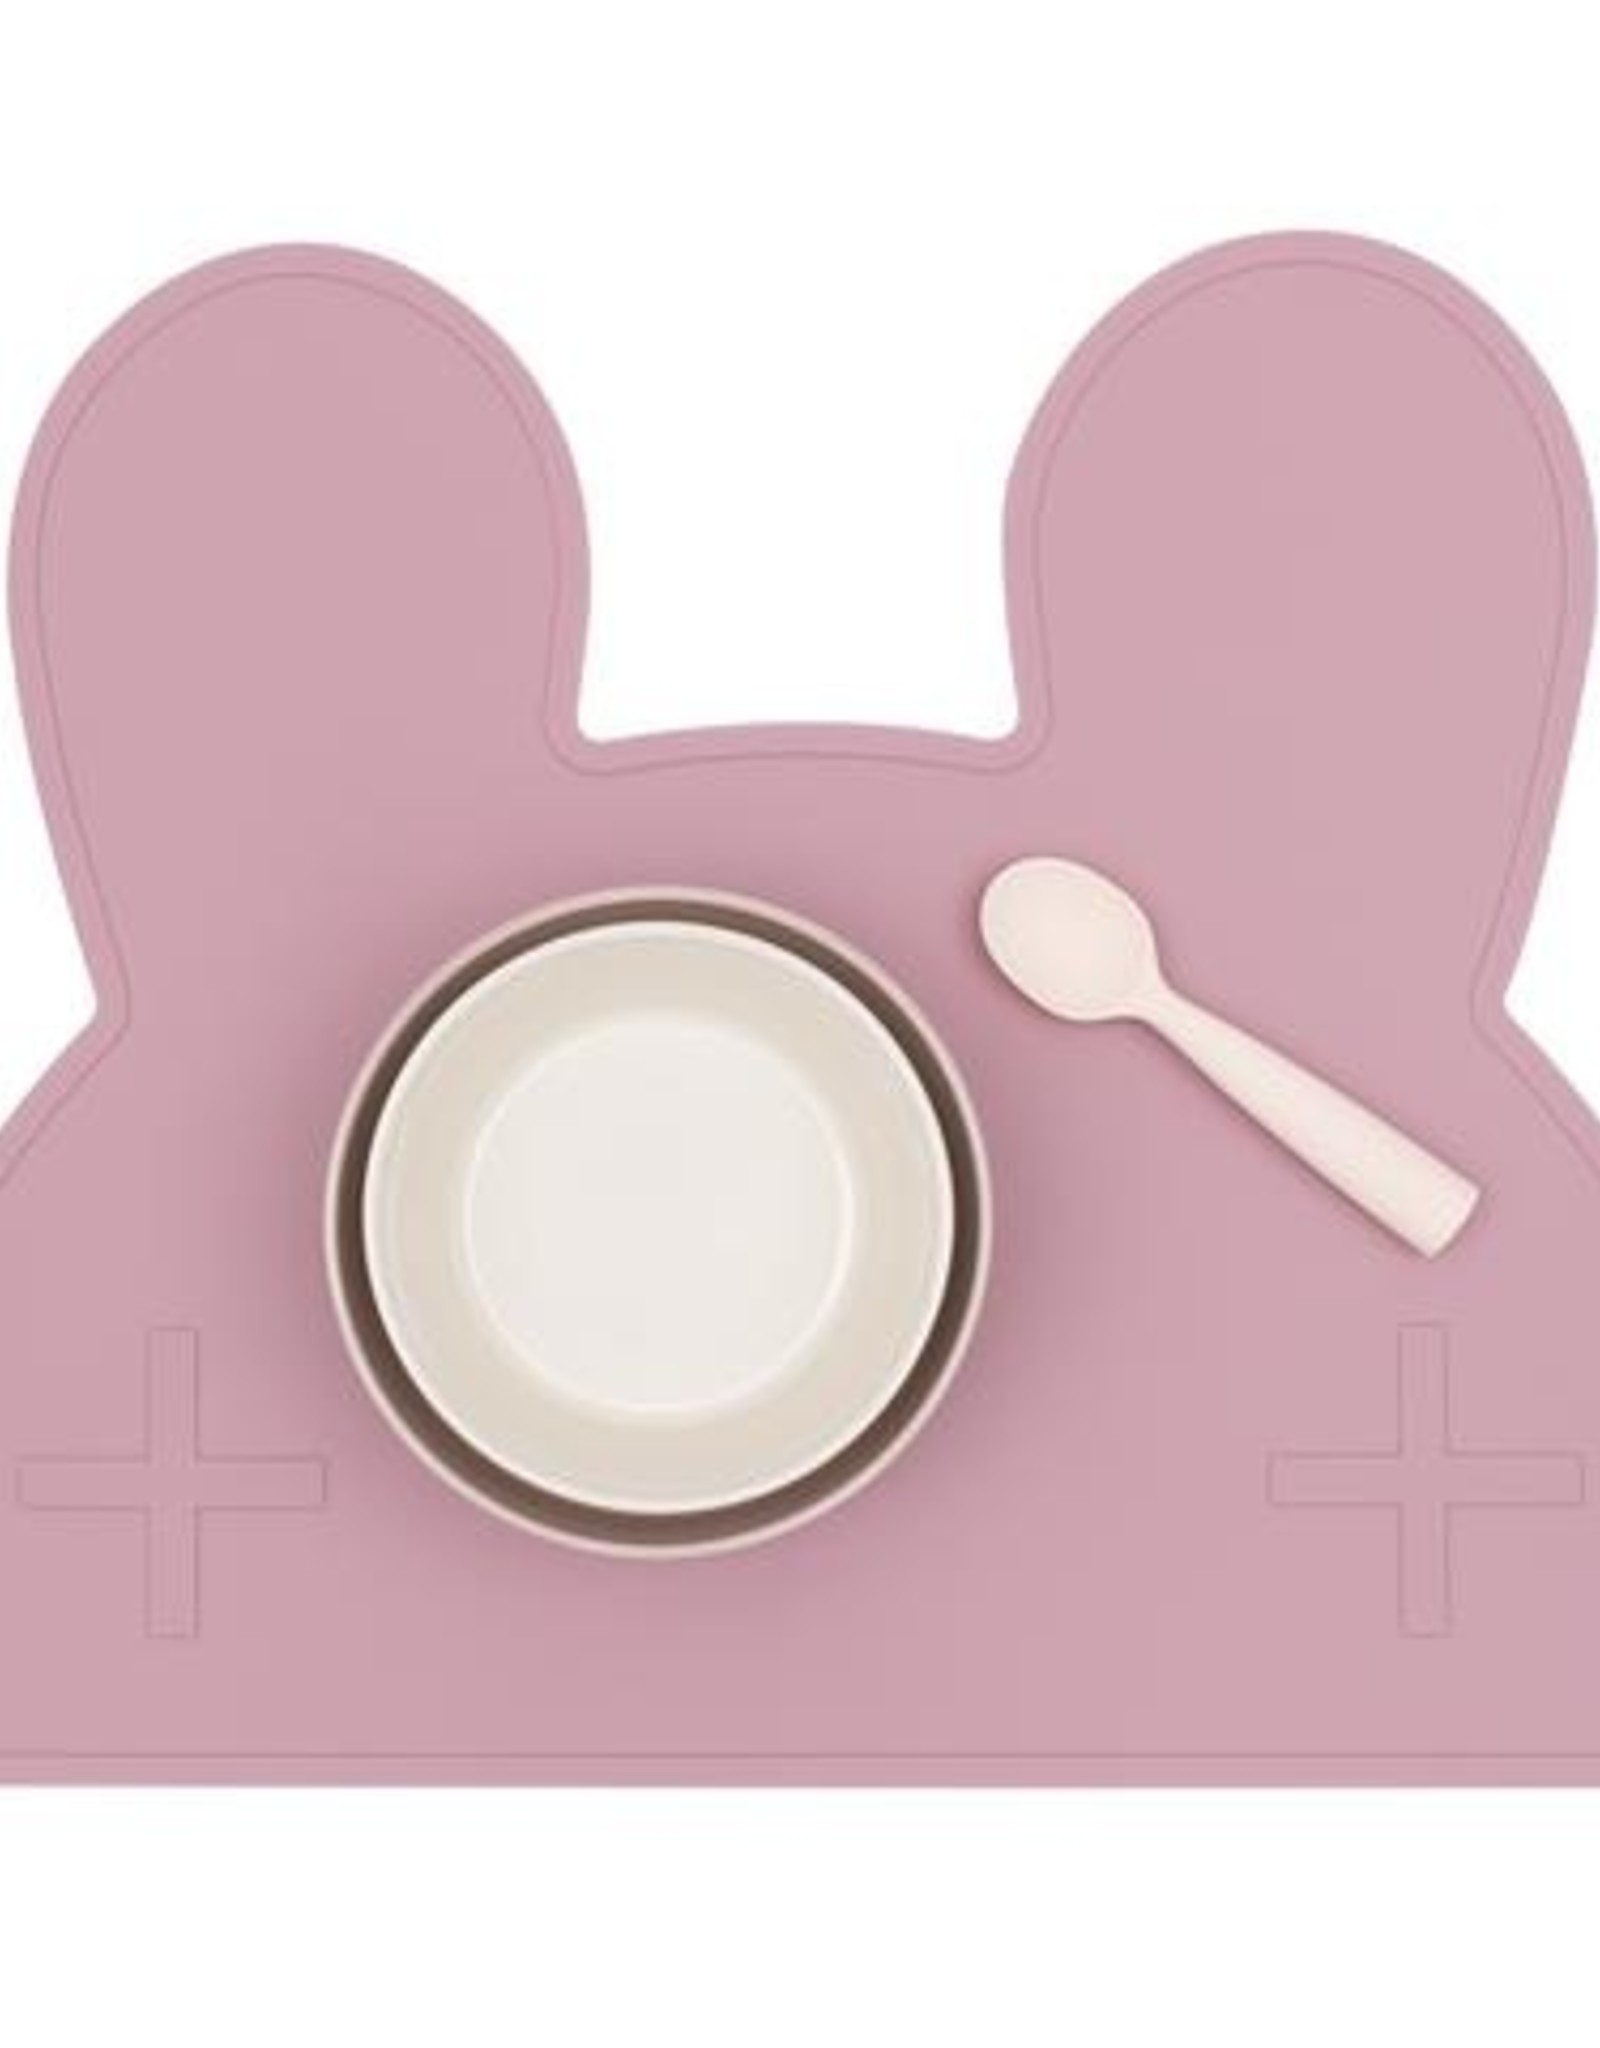 We Might Be Tiny Placemat bunny - Dusty rose